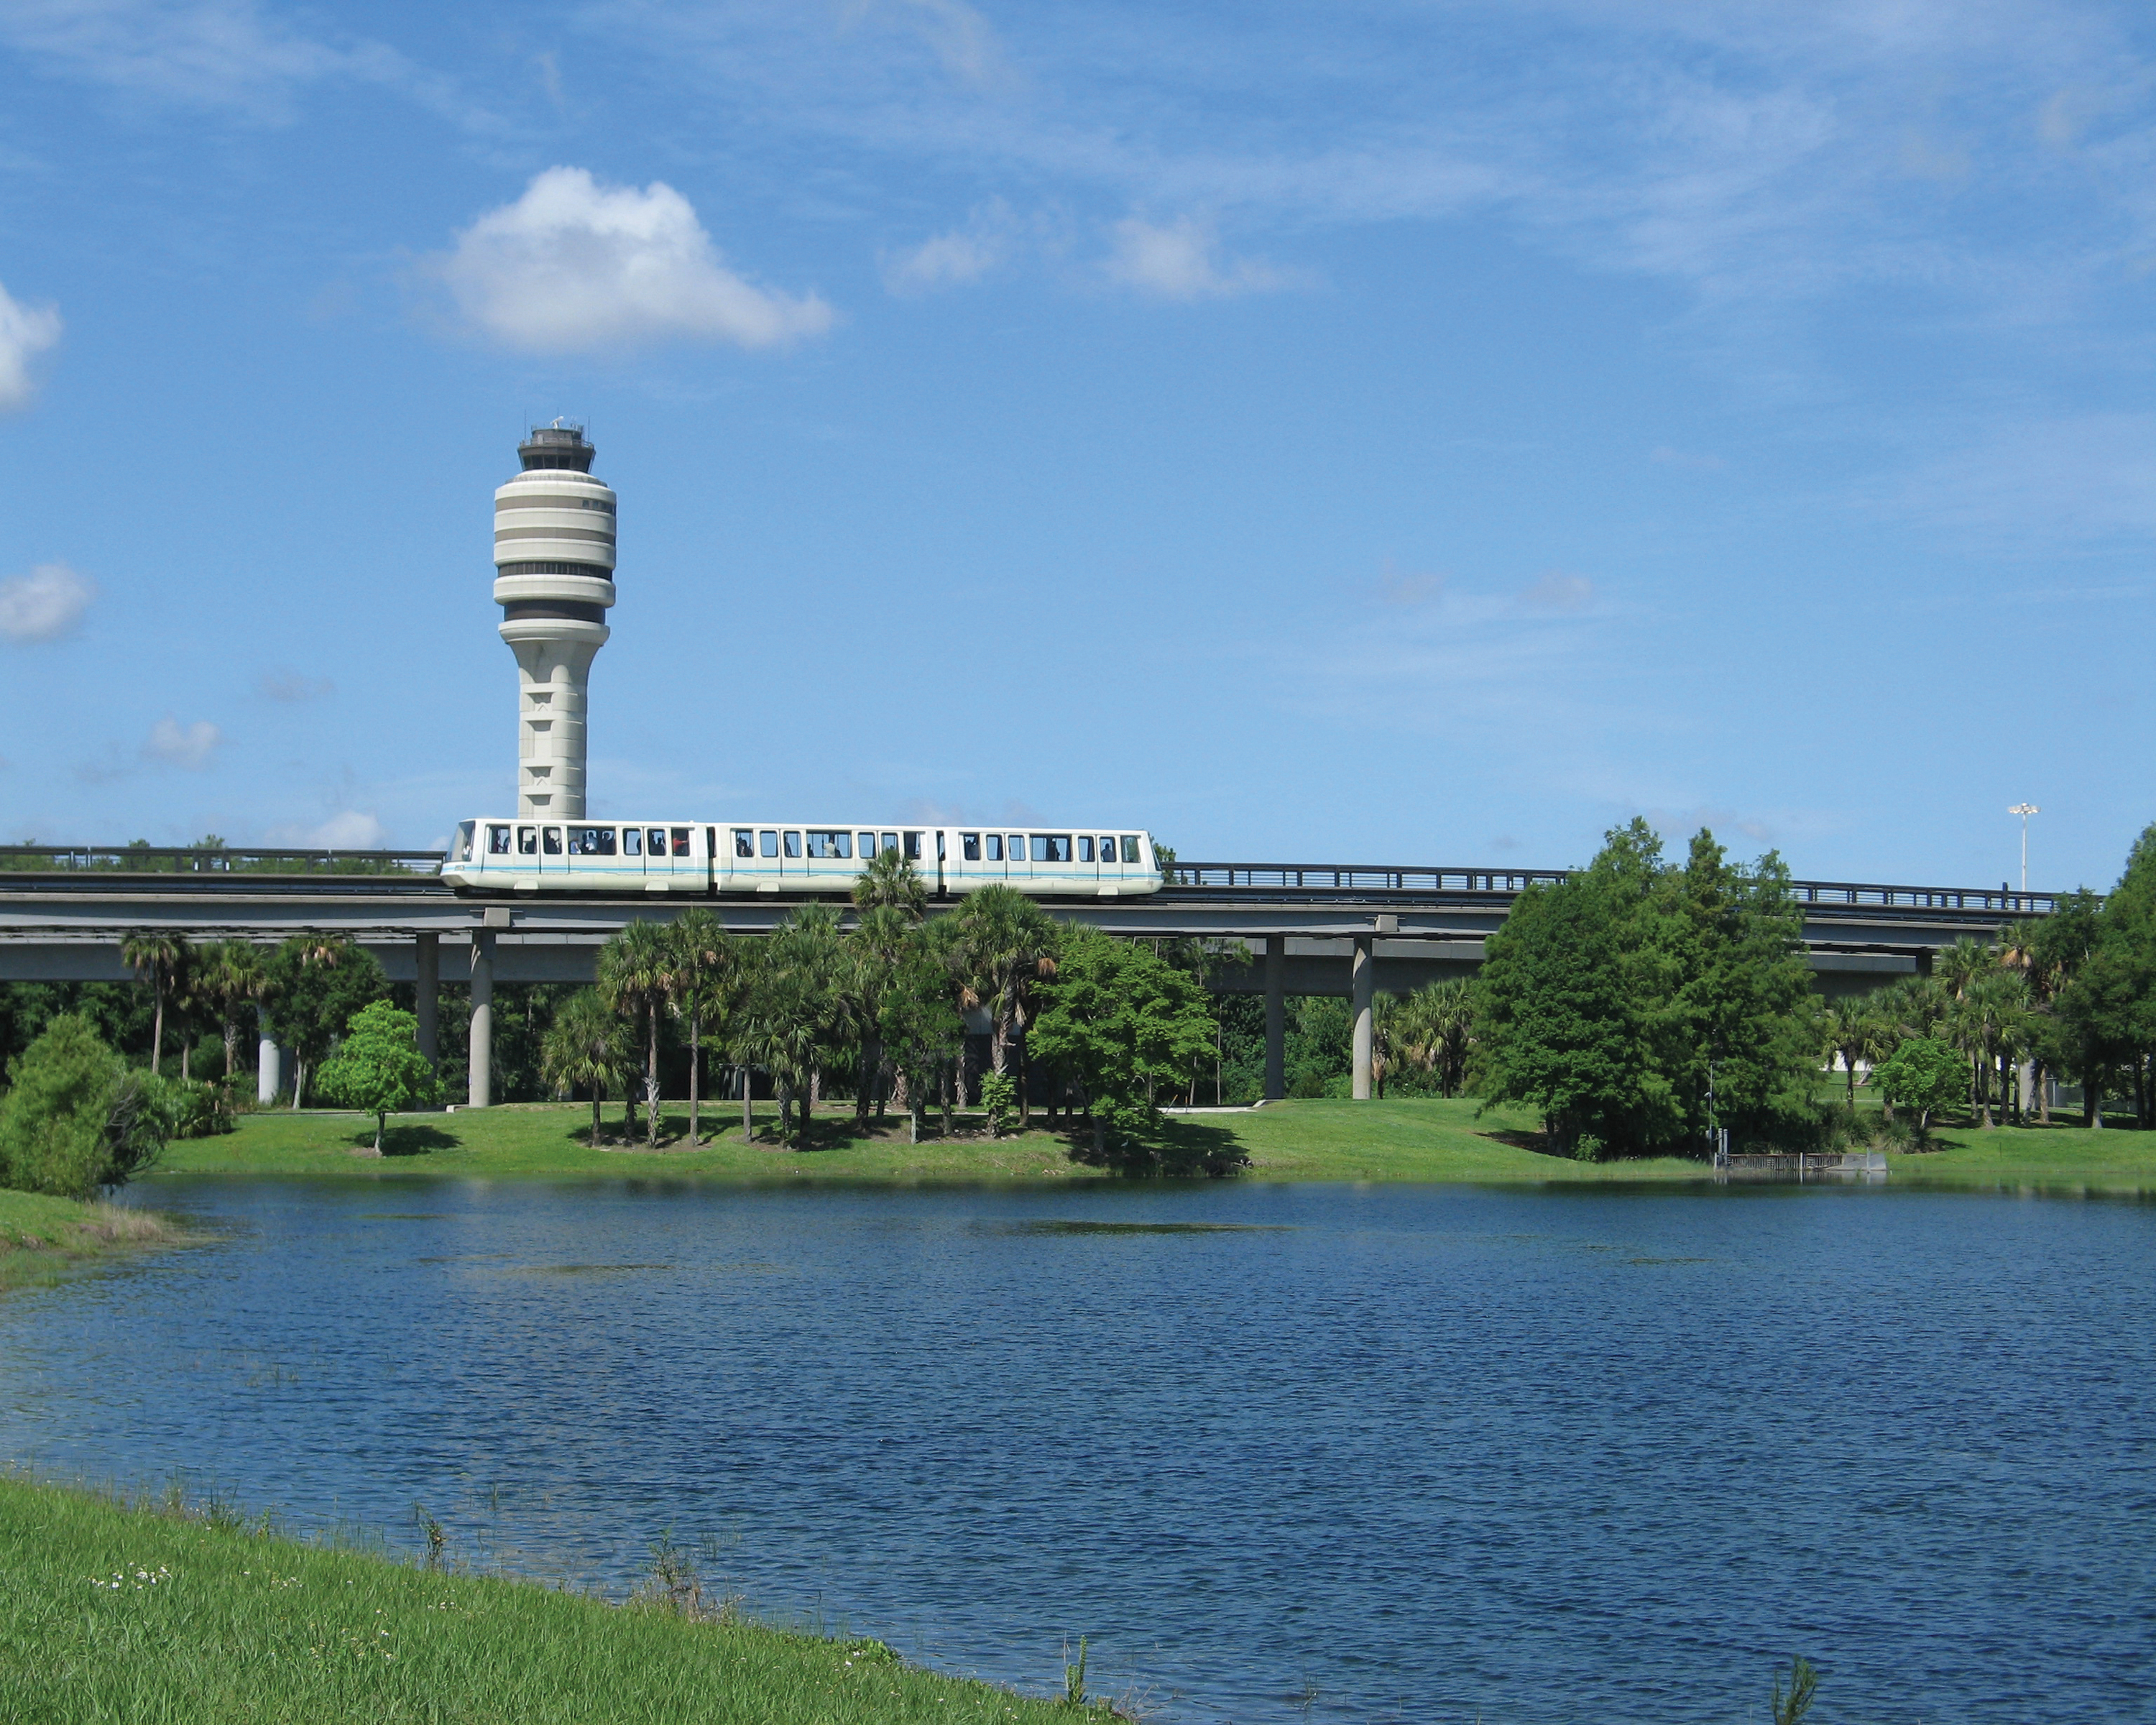 FAA Tower with AGT Across Lake